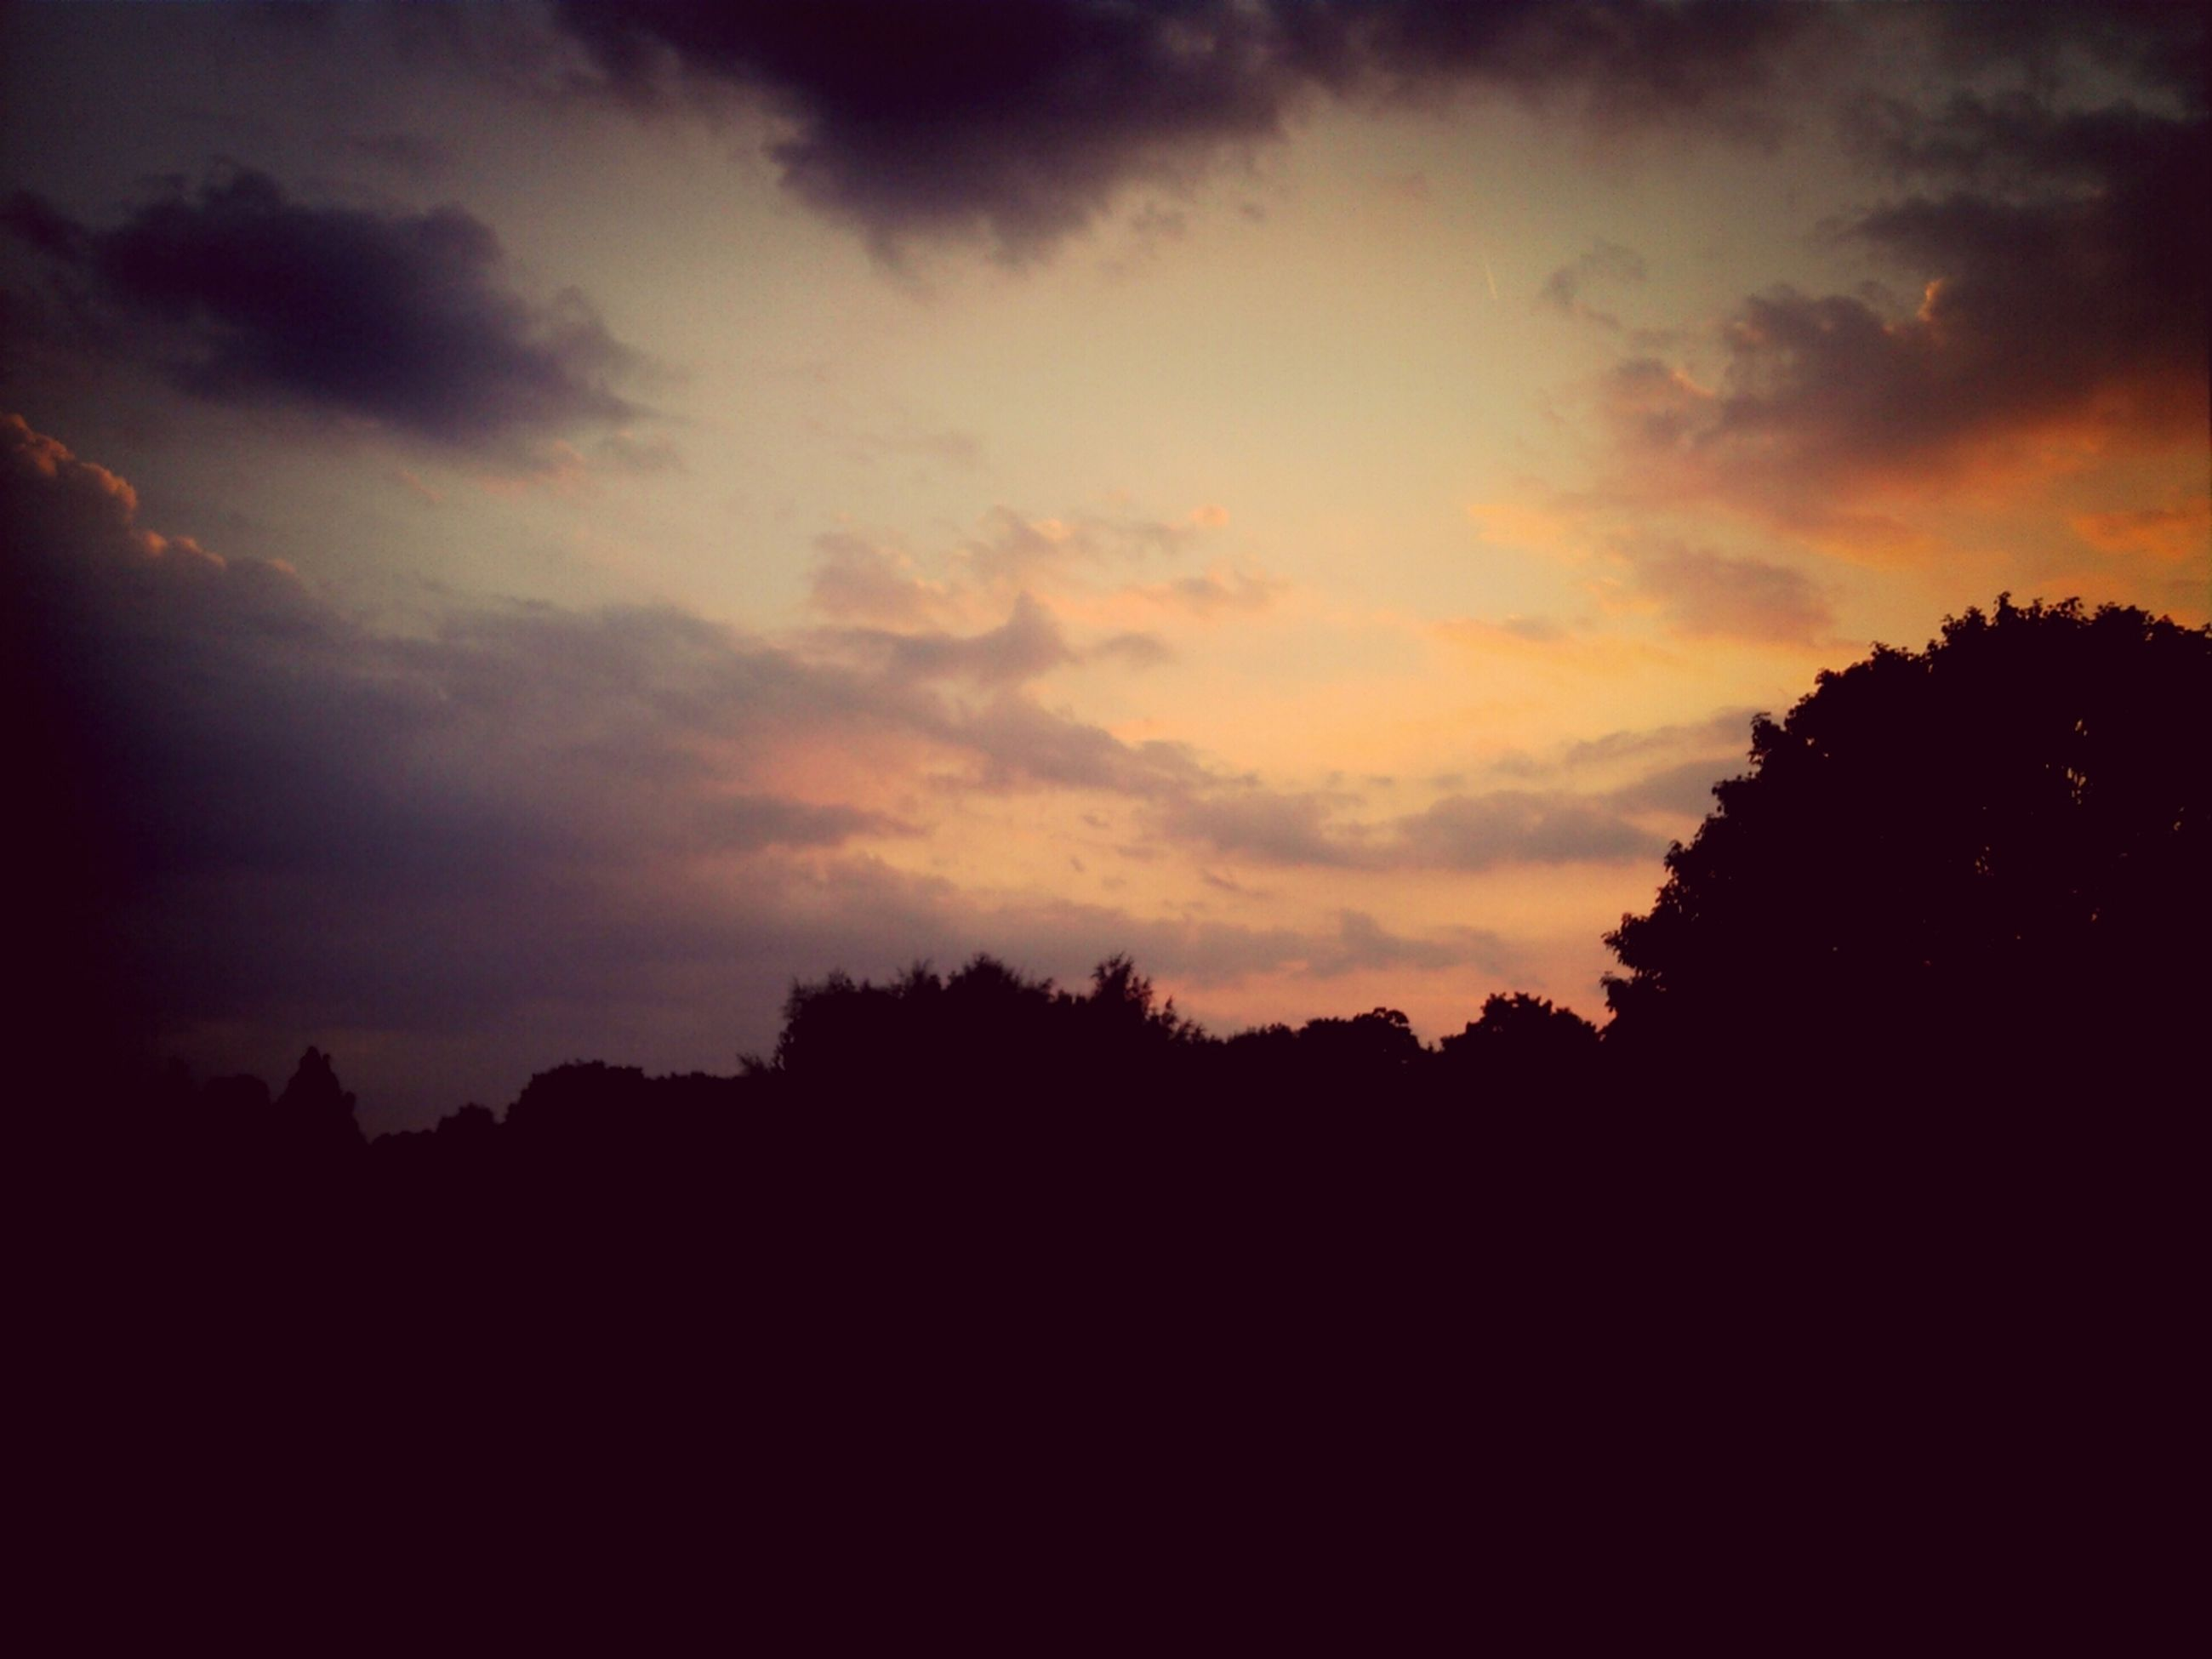 silhouette, sunset, sky, tree, tranquility, beauty in nature, scenics, tranquil scene, nature, cloud - sky, low angle view, dark, idyllic, outline, orange color, dusk, cloud, outdoors, no people, dramatic sky